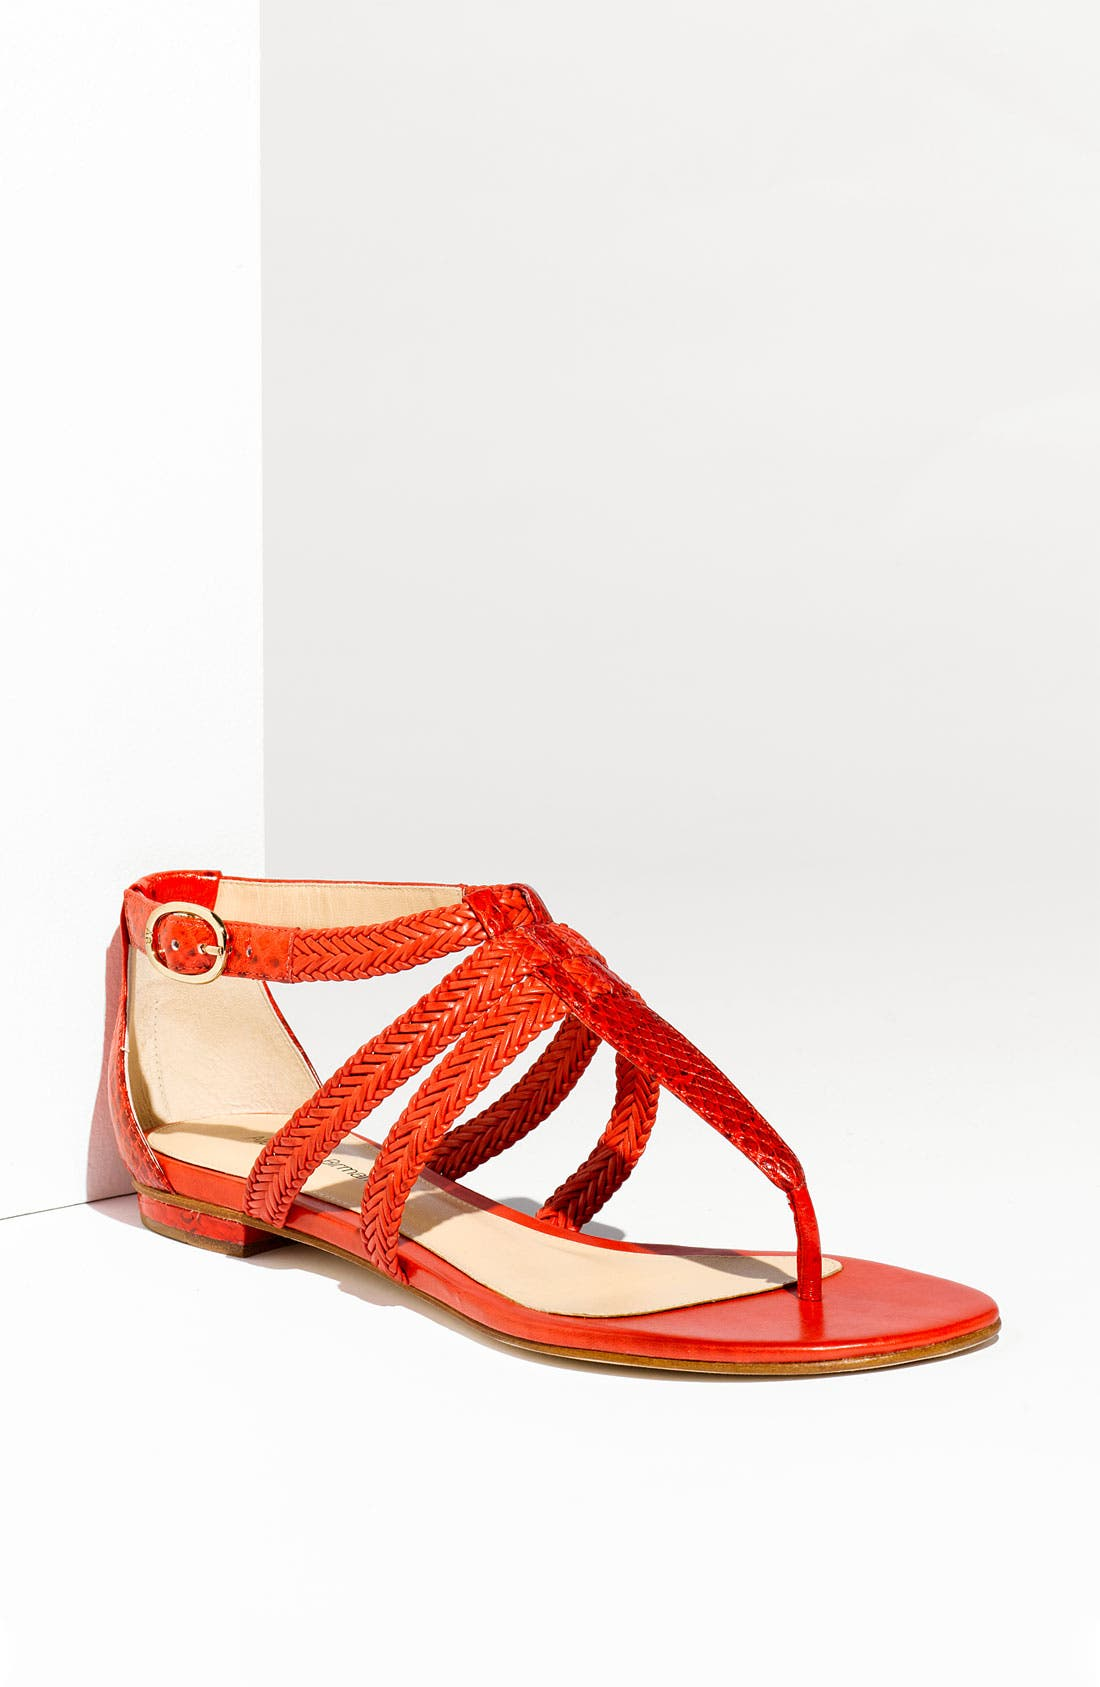 Alternate Image 1 Selected - Alexandre Birman Braided Thong Sandal